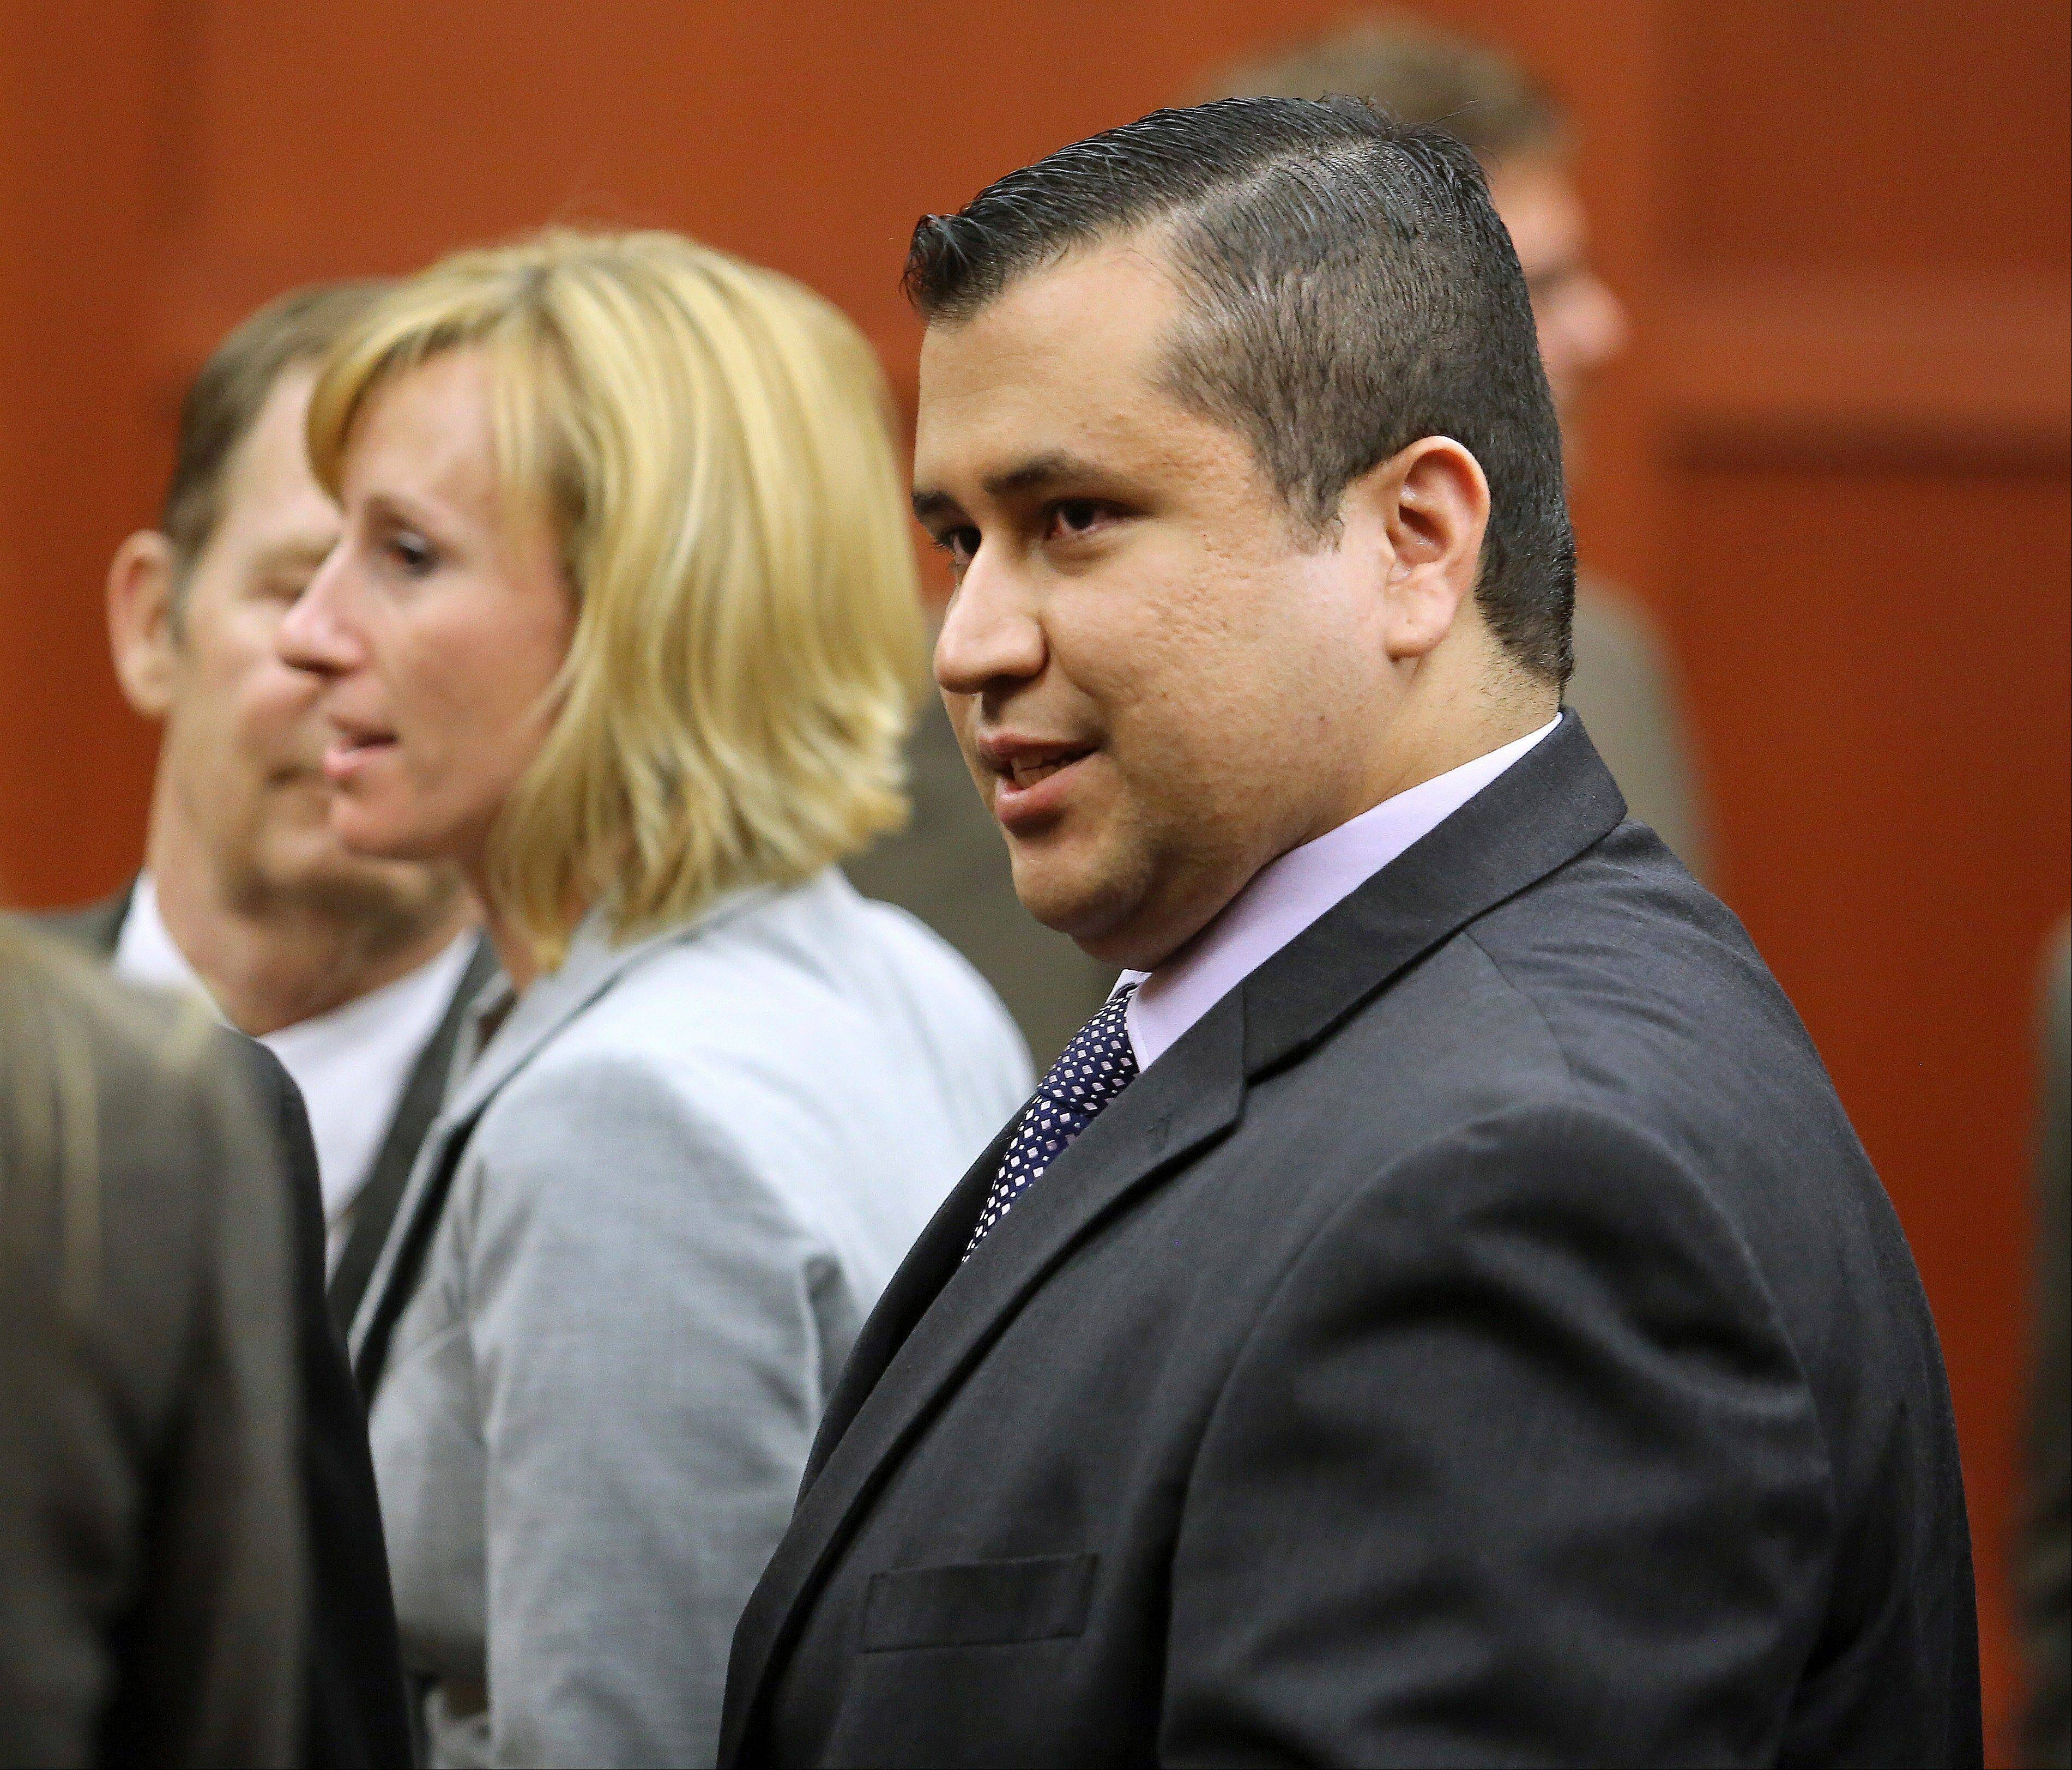 George Zimmerman leaves court with his family after Zimmerman's not guilty verdict was read in Seminole Circuit Court in Sanford, Fla., Saturday.